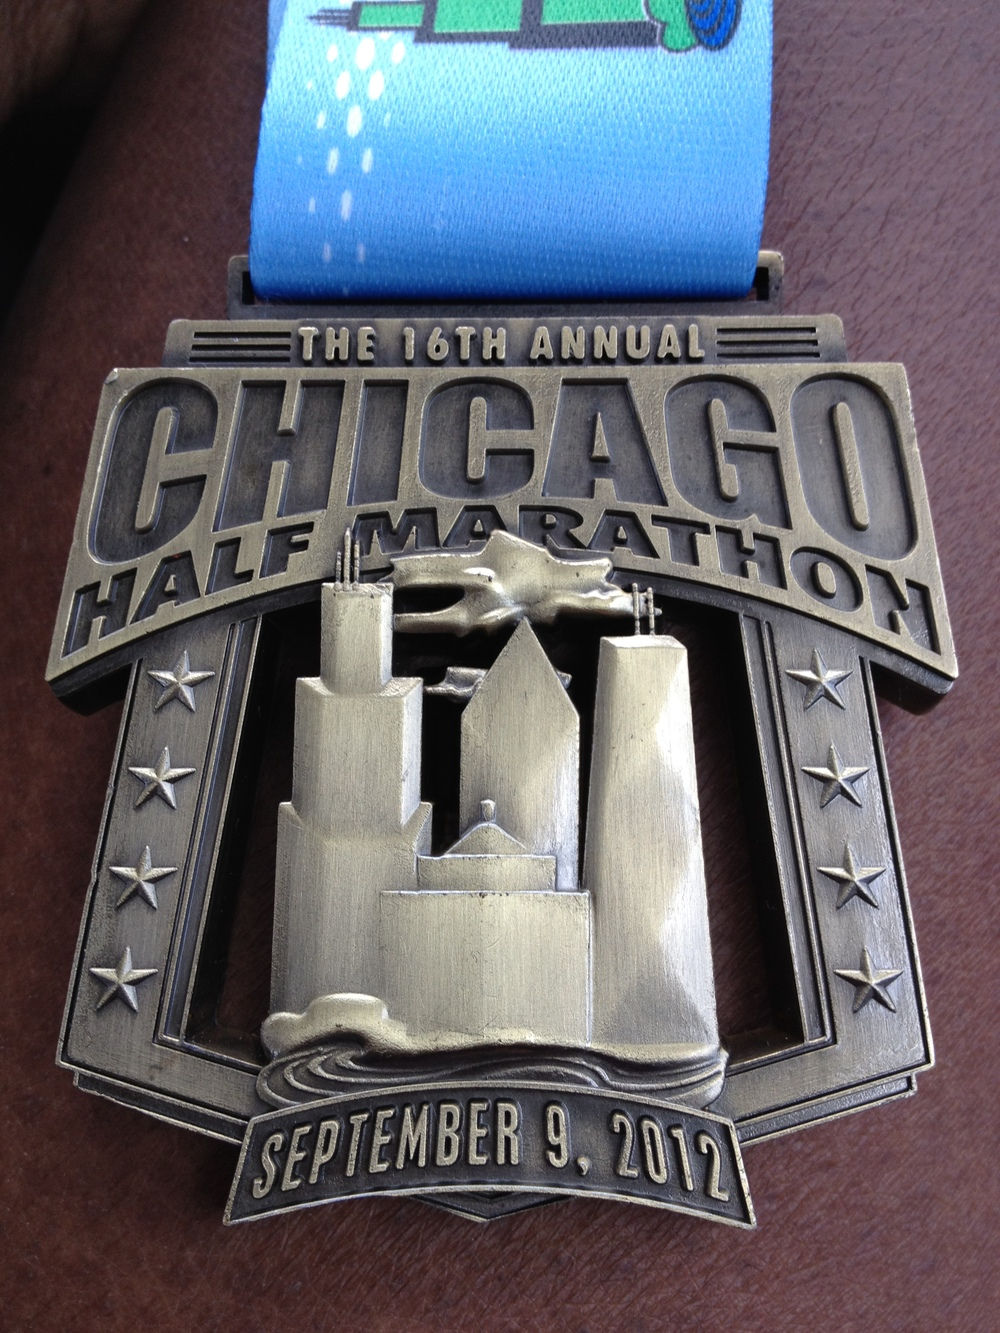 Awesome medal for the Half.  Pretty heavy!